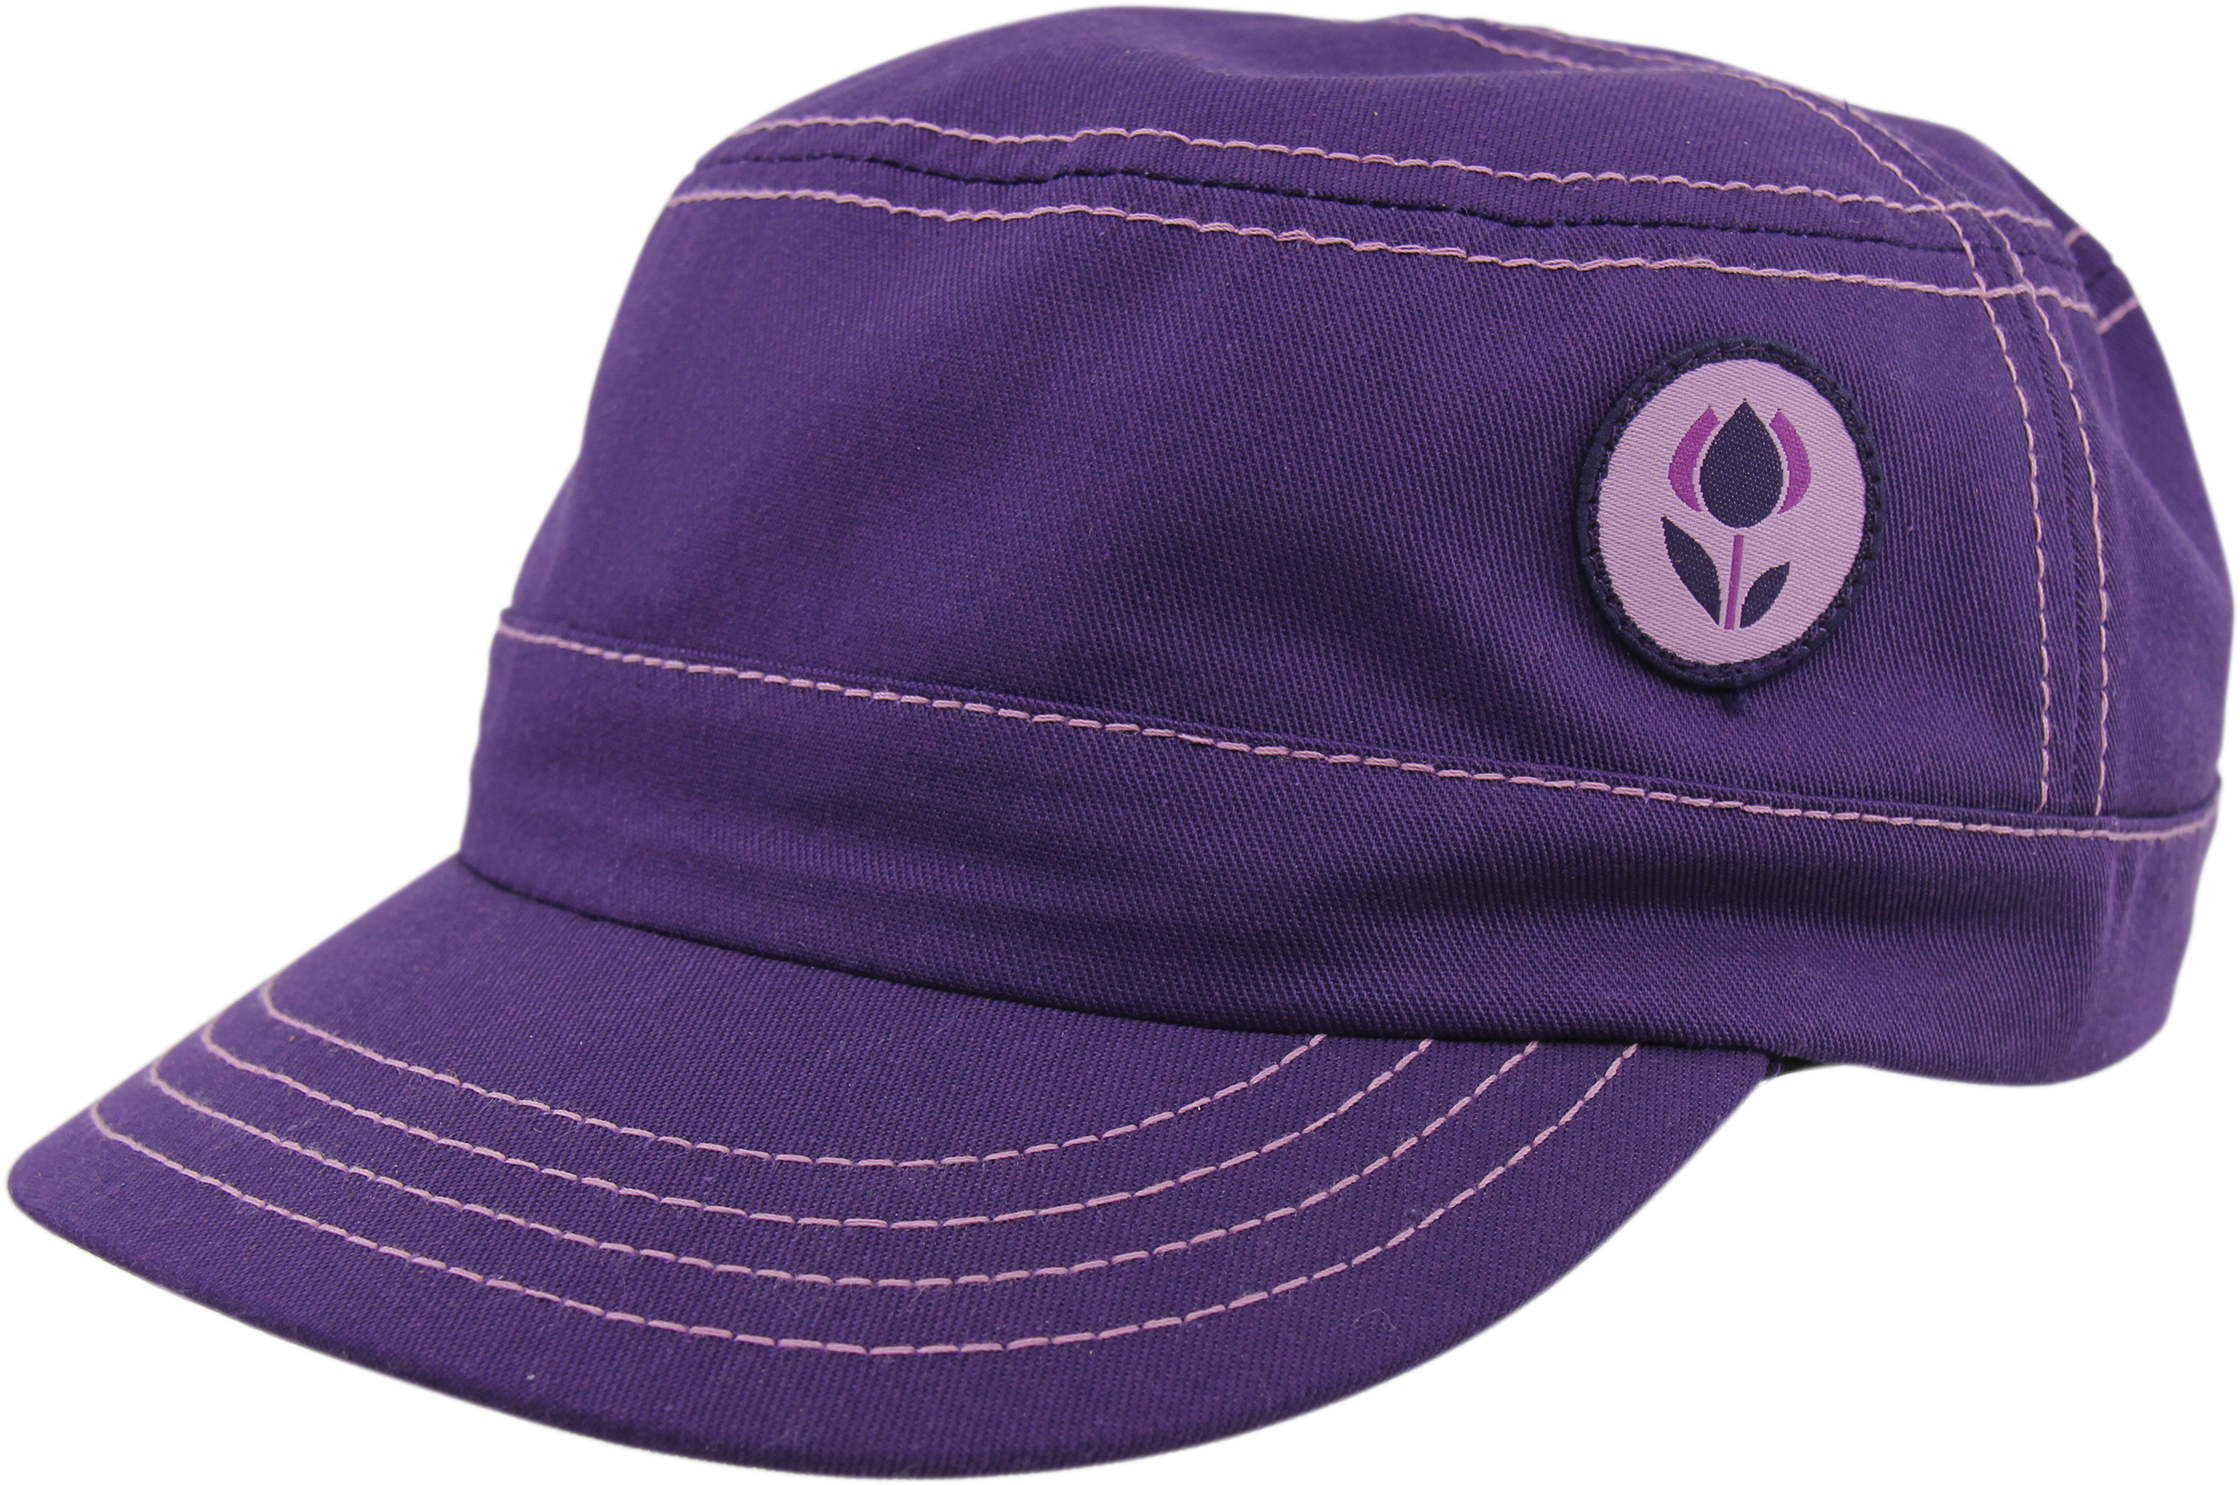 Ambler Merit Cadet Hat - Women's